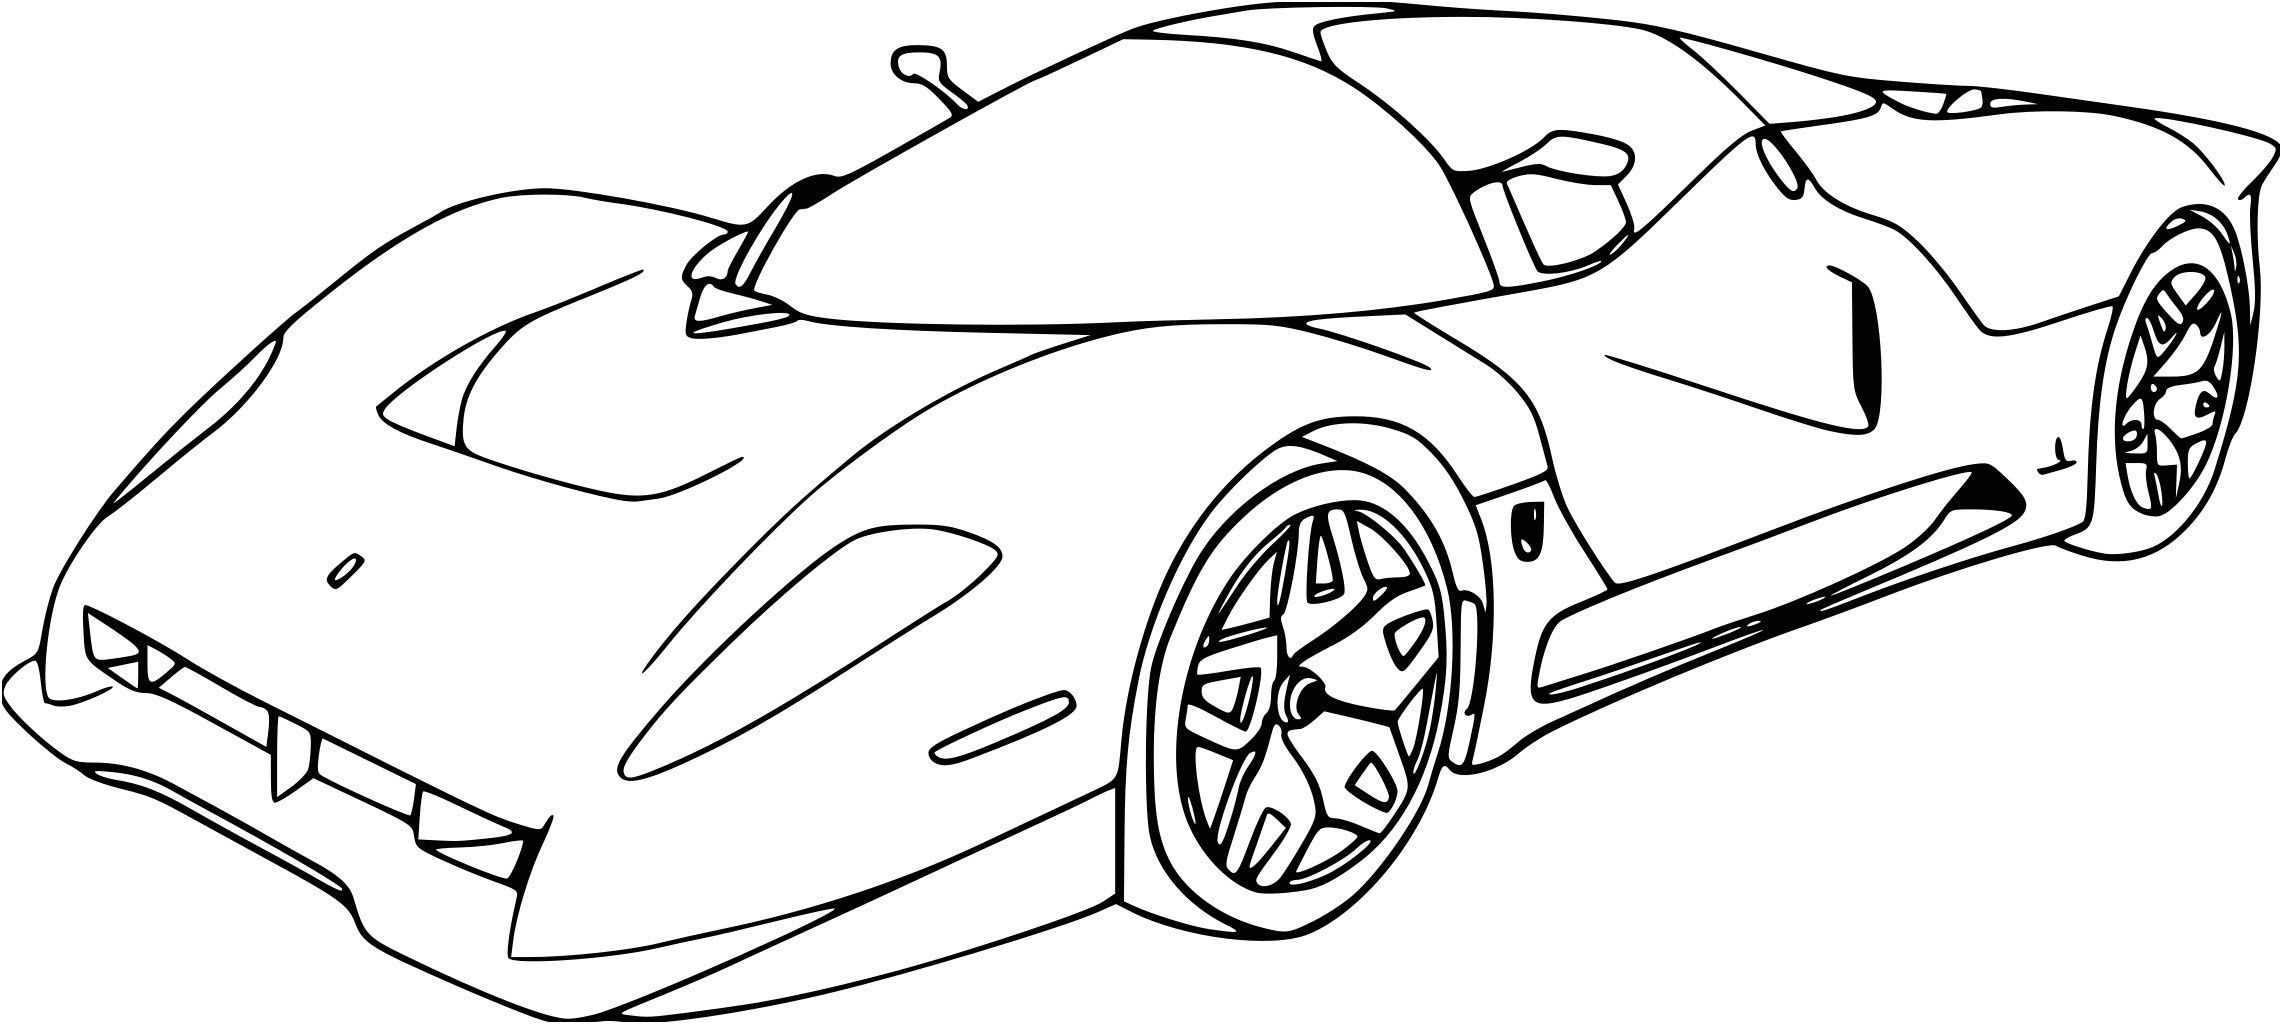 12 Génial Coloriage Voiture Fast And Furious Stock destiné Coloriage Vehicule